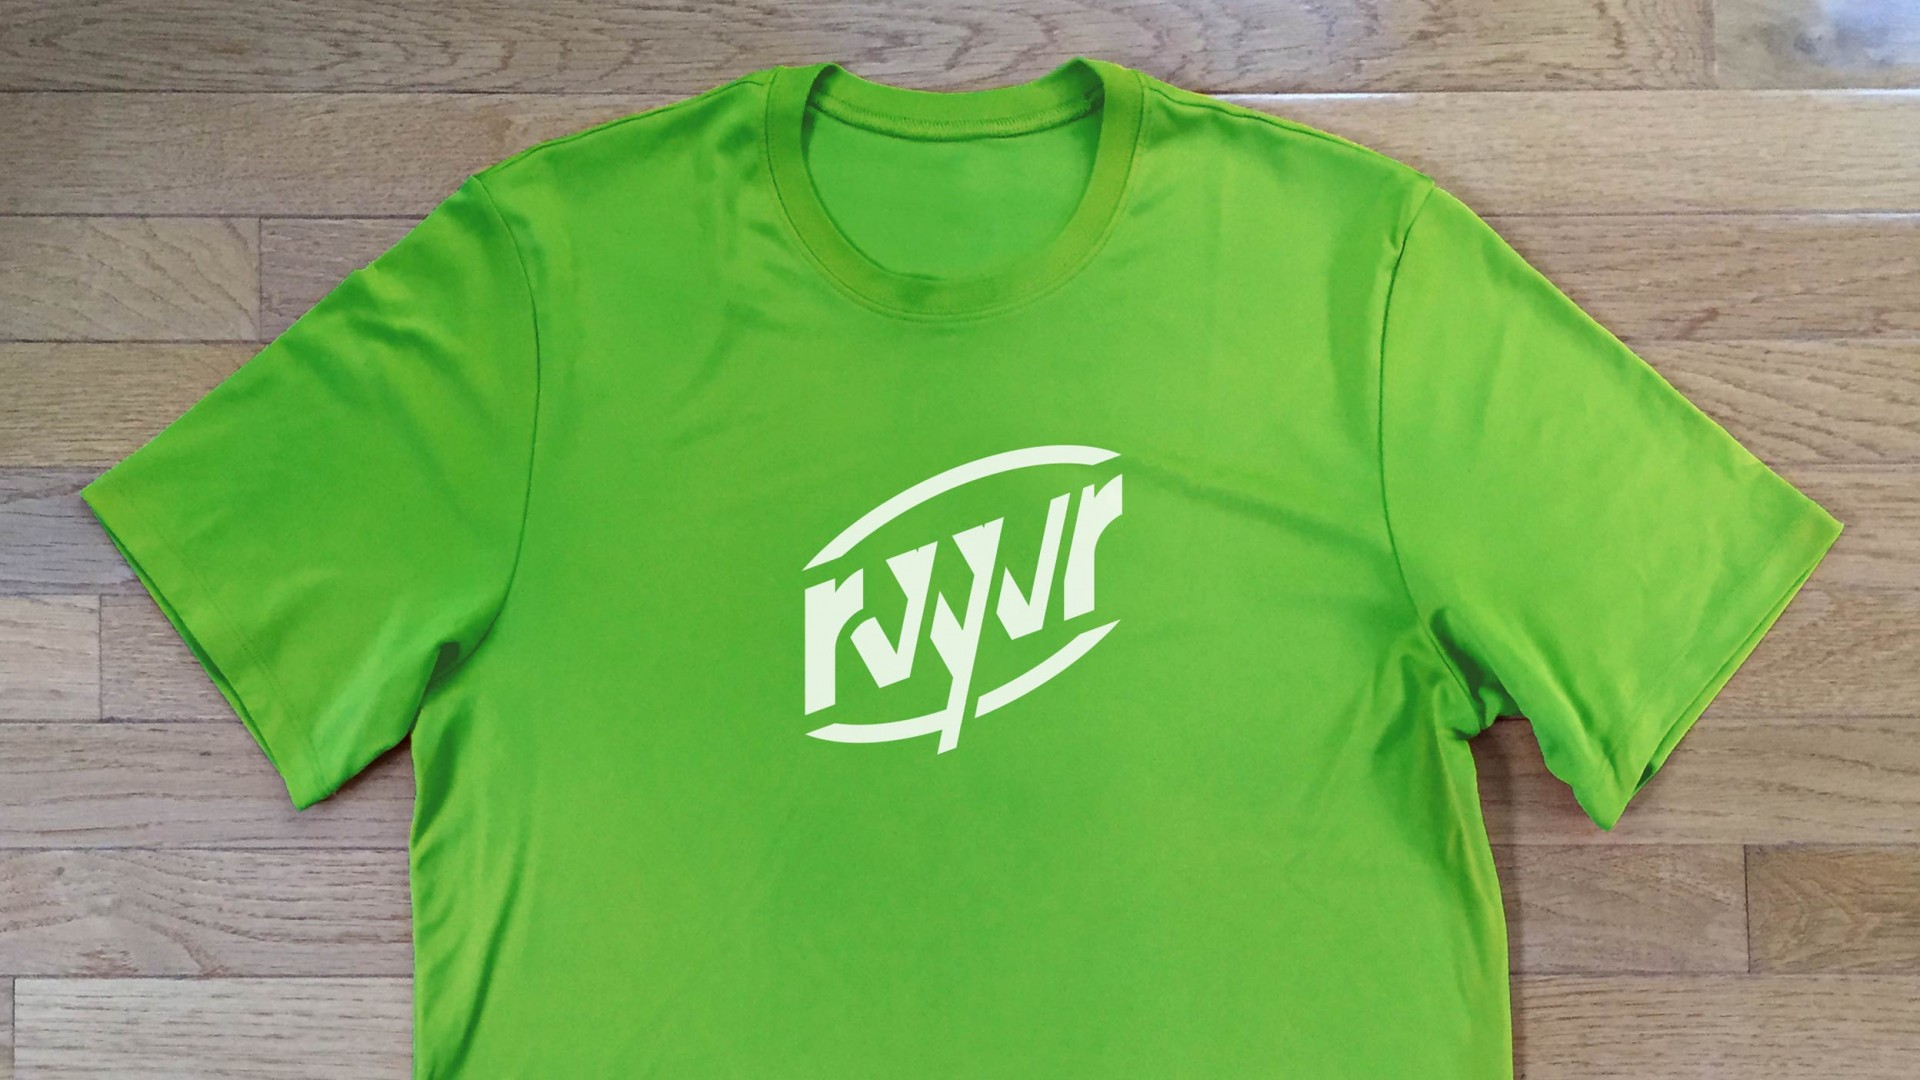 Branded dry fit exercise shirt for RVYVR.